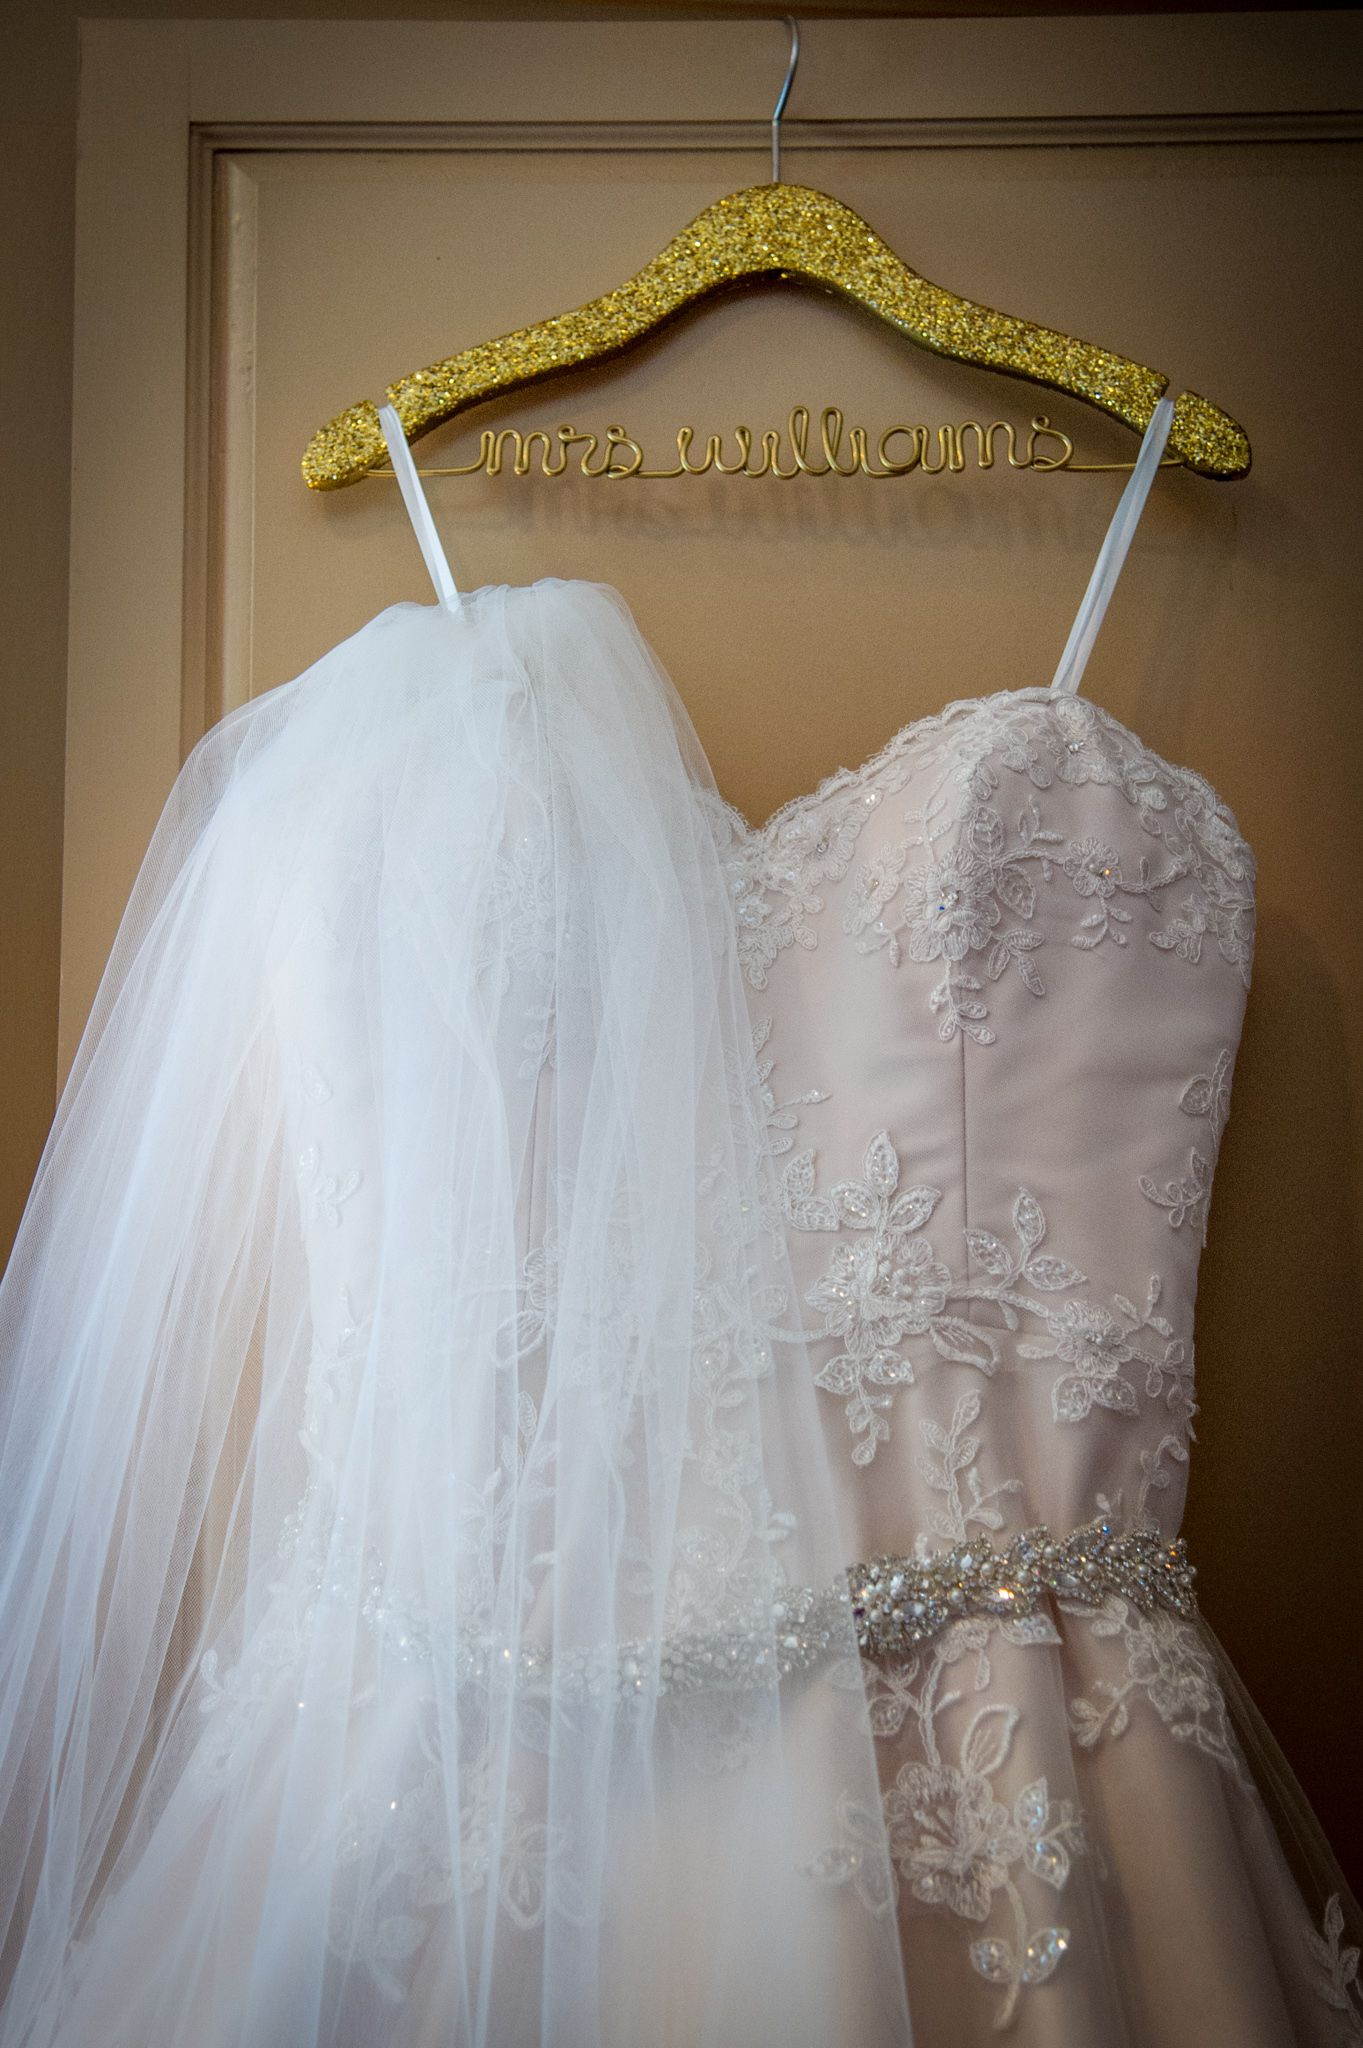 off white lace wedding dress with belt, long veil, custom hanger ...